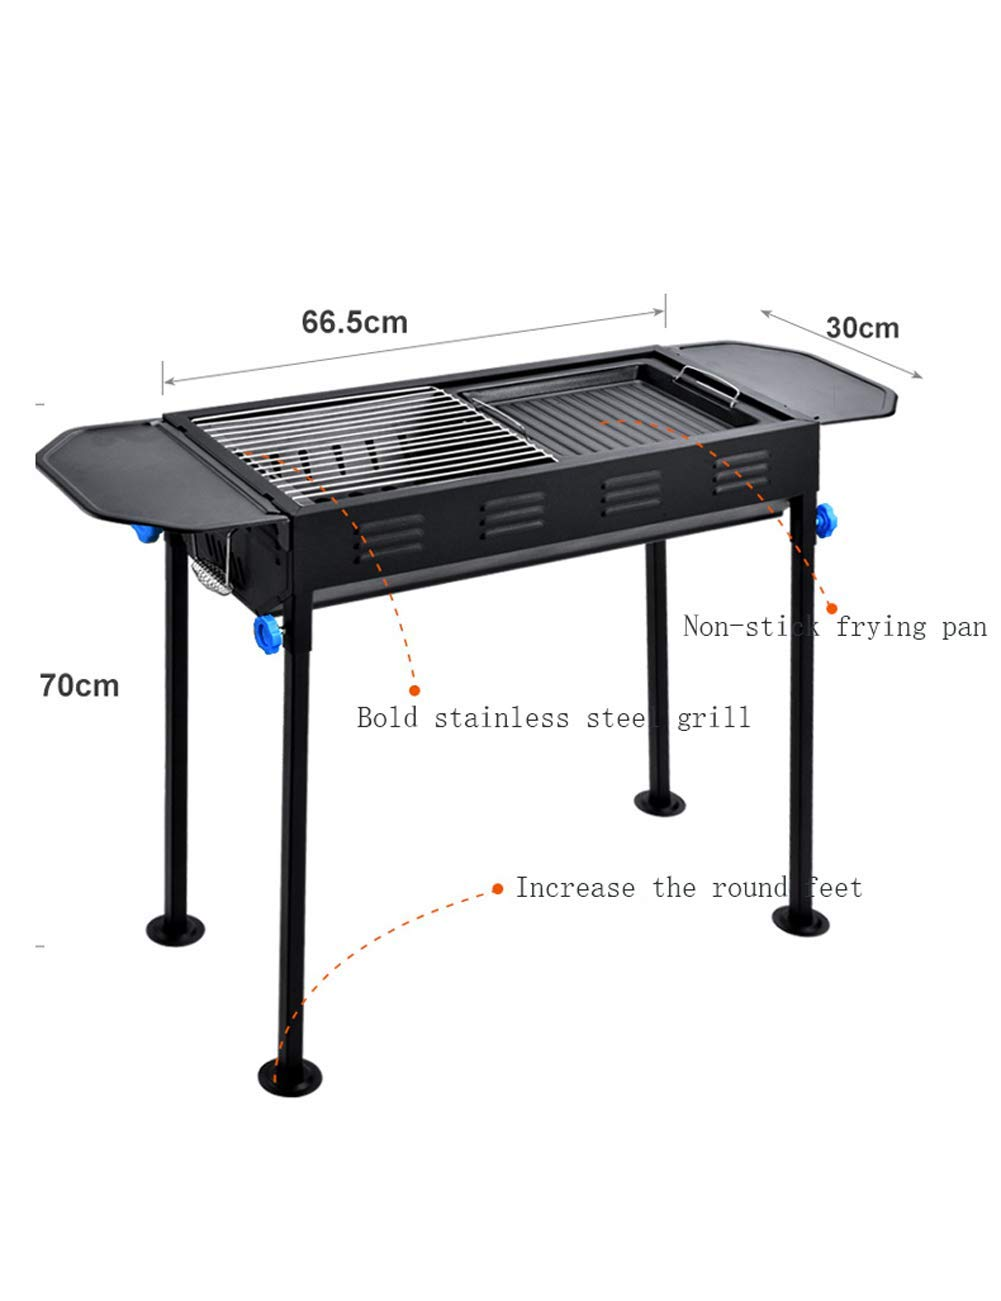 Amazon.com : XAJGW Portable Charcoal Grill Folding Barbecue ...